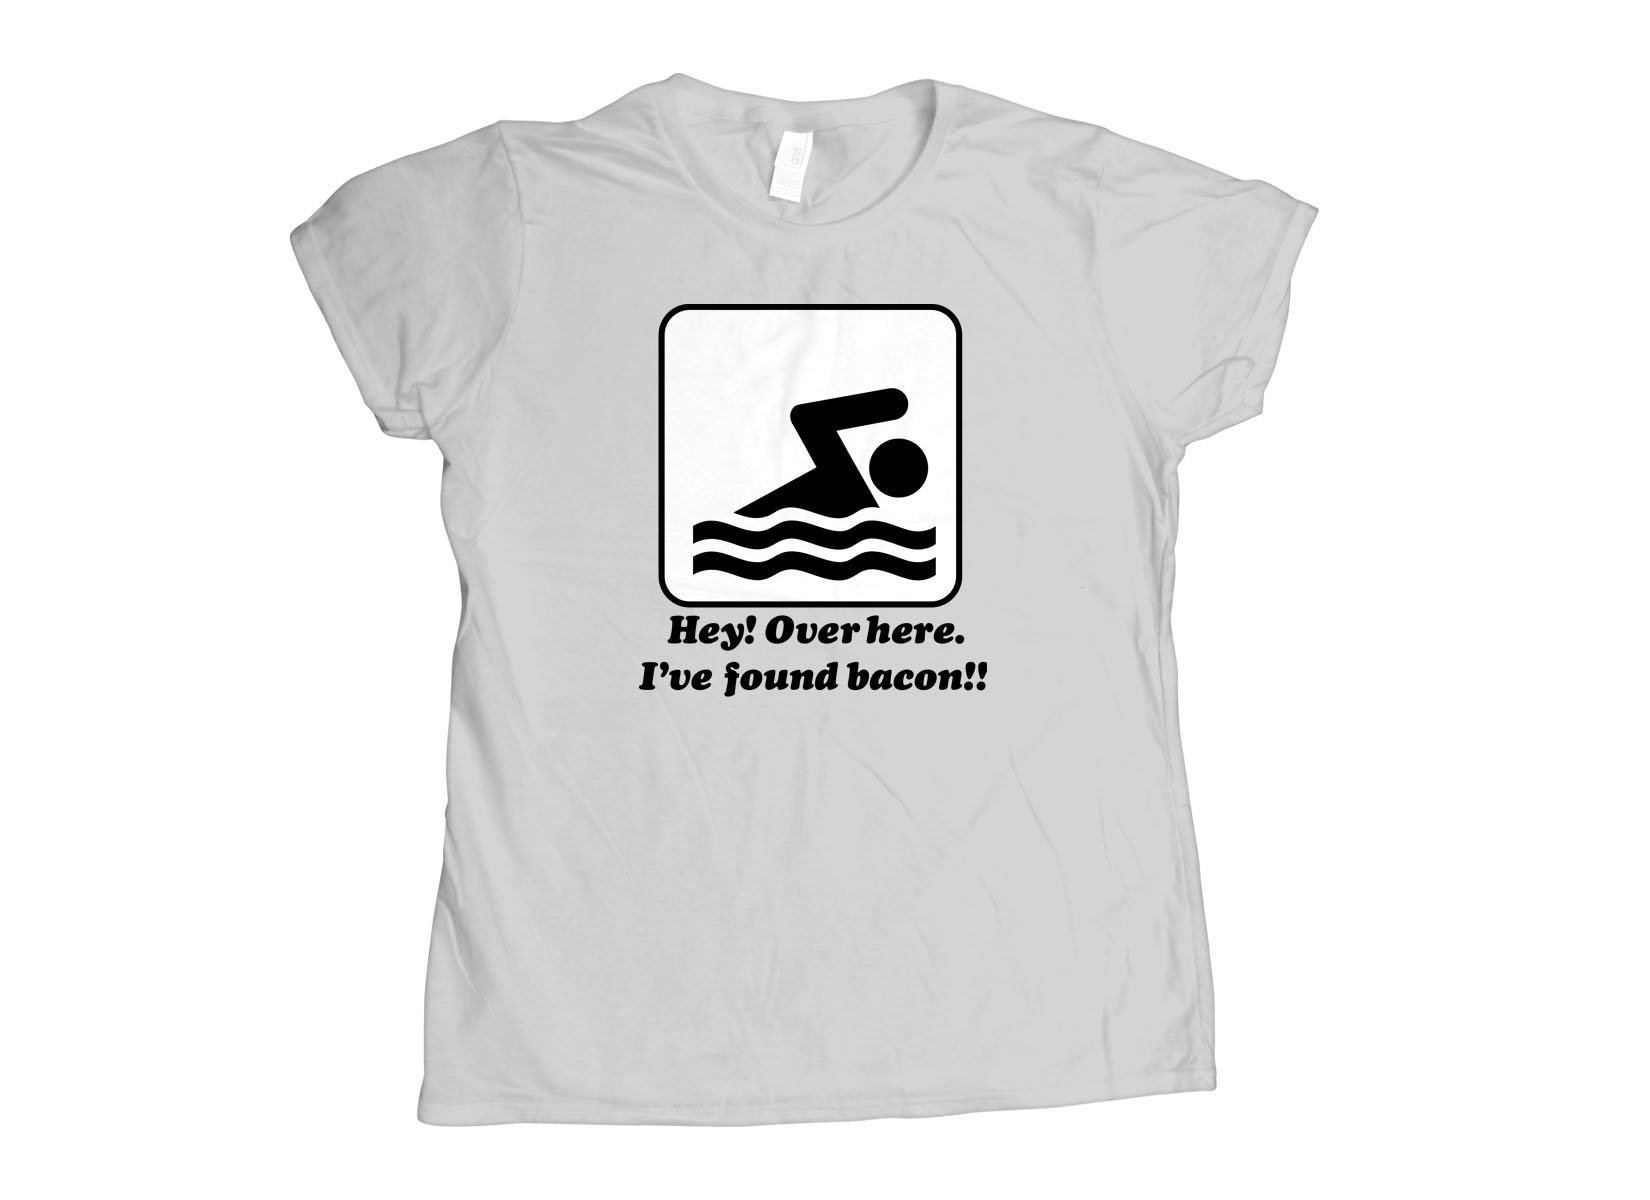 I've Found Bacon! on Womens T-Shirt